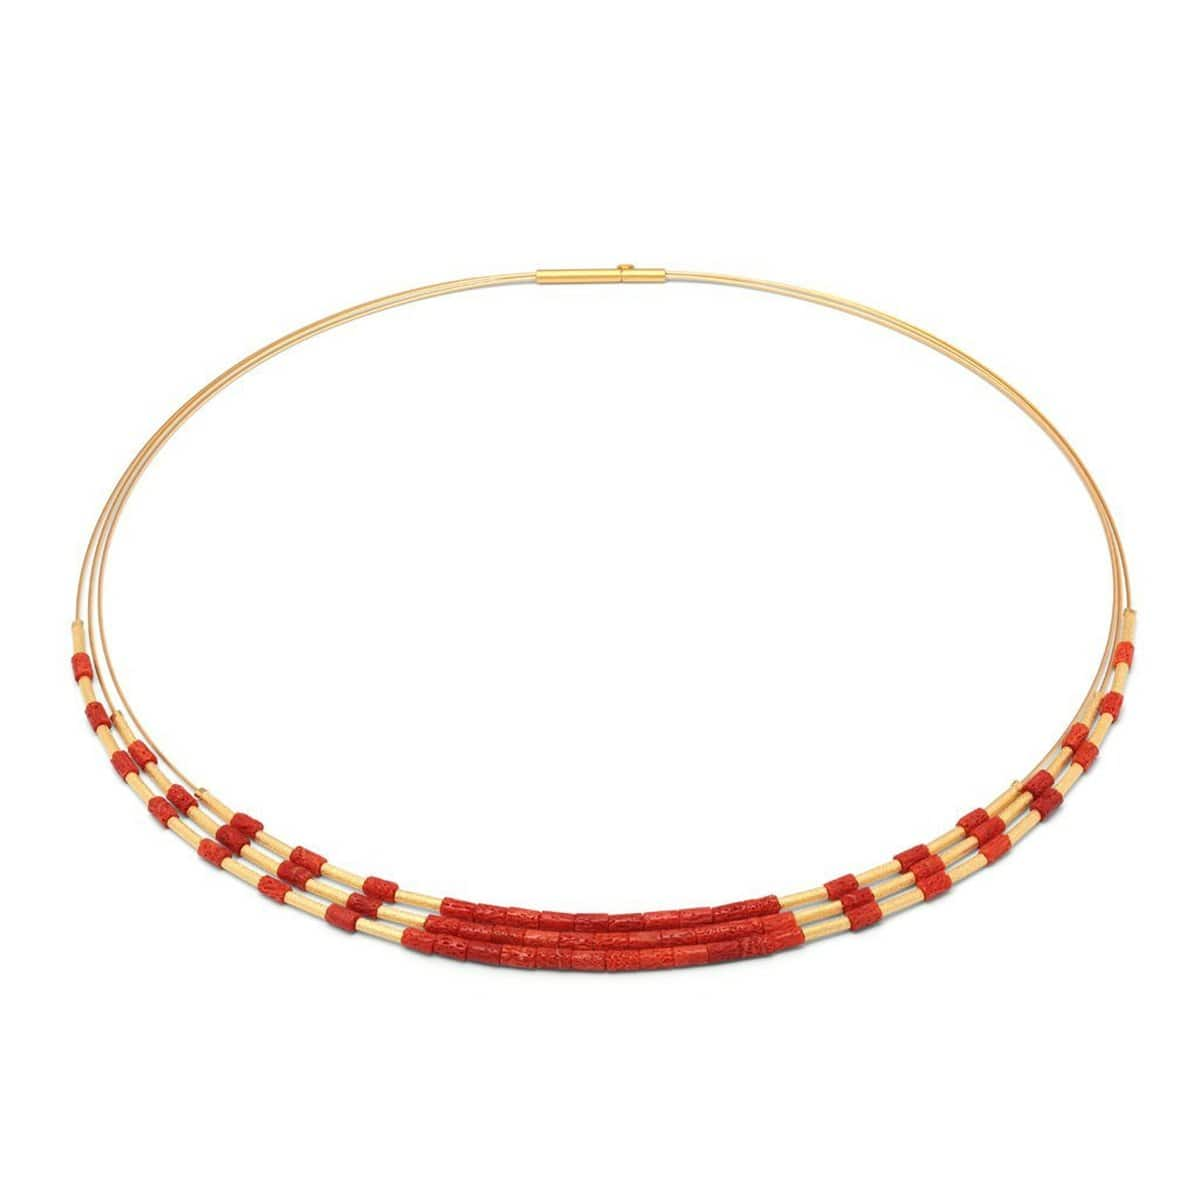 Clema Red Coral Necklace - 85219296-Bernd Wolf-Renee Taylor Gallery